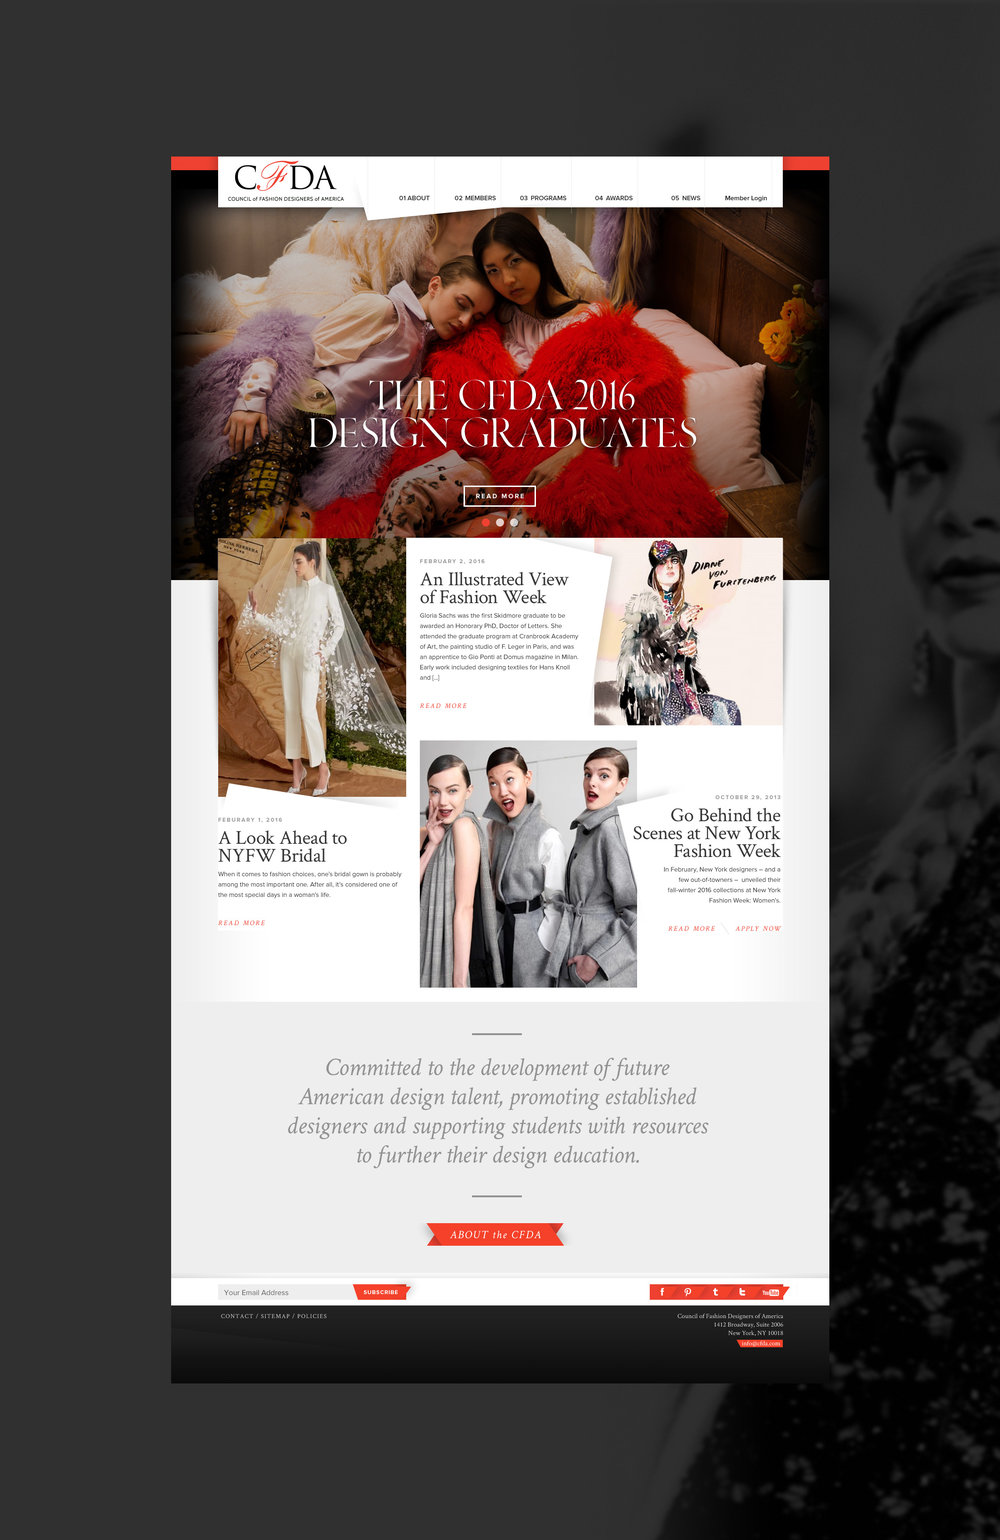 The CFDA Homepage